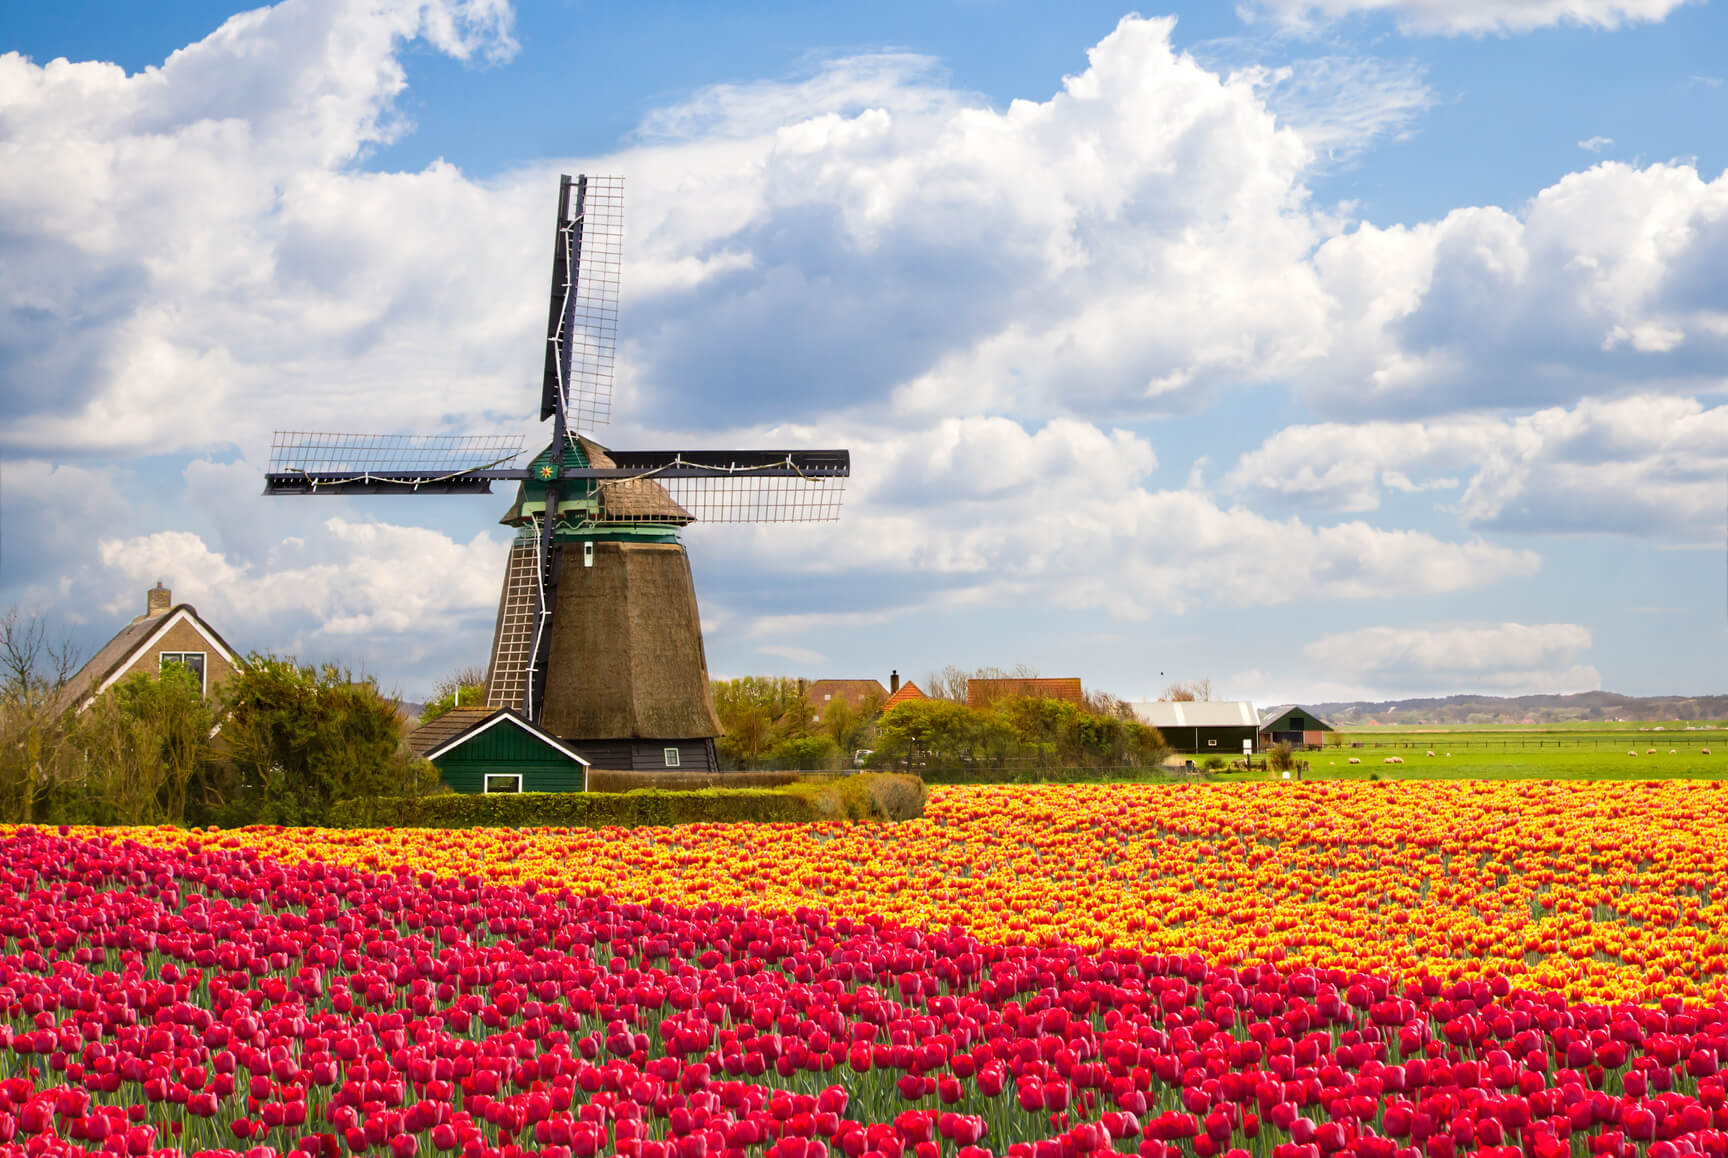 Non-stop from Mexico City, Mexico to Amsterdam, Netherlands for only $532 USD roundtrip